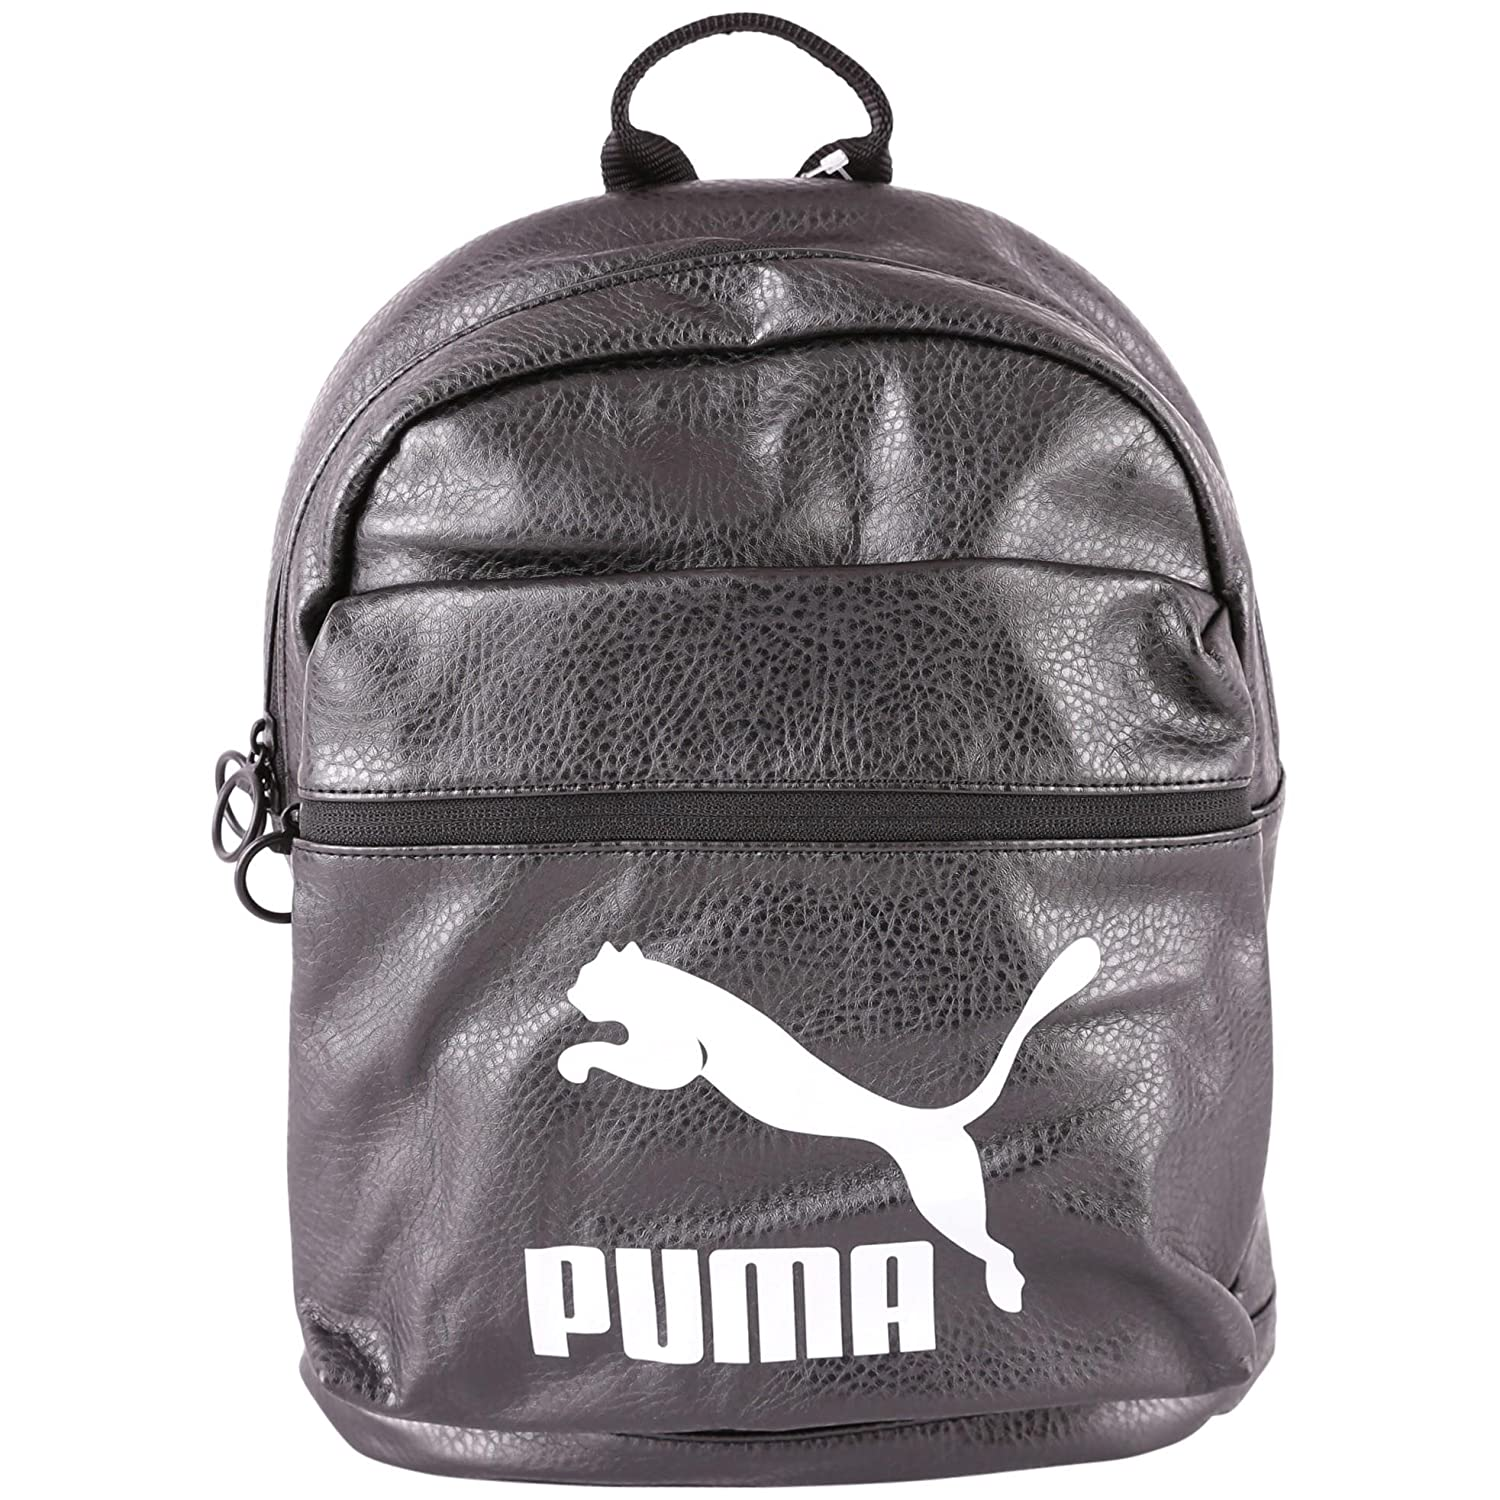 PUMA Prime Backpack Metallic Puma Black -  Amazon.co.uk  Shoes   Bags bcb51cbba3d2e